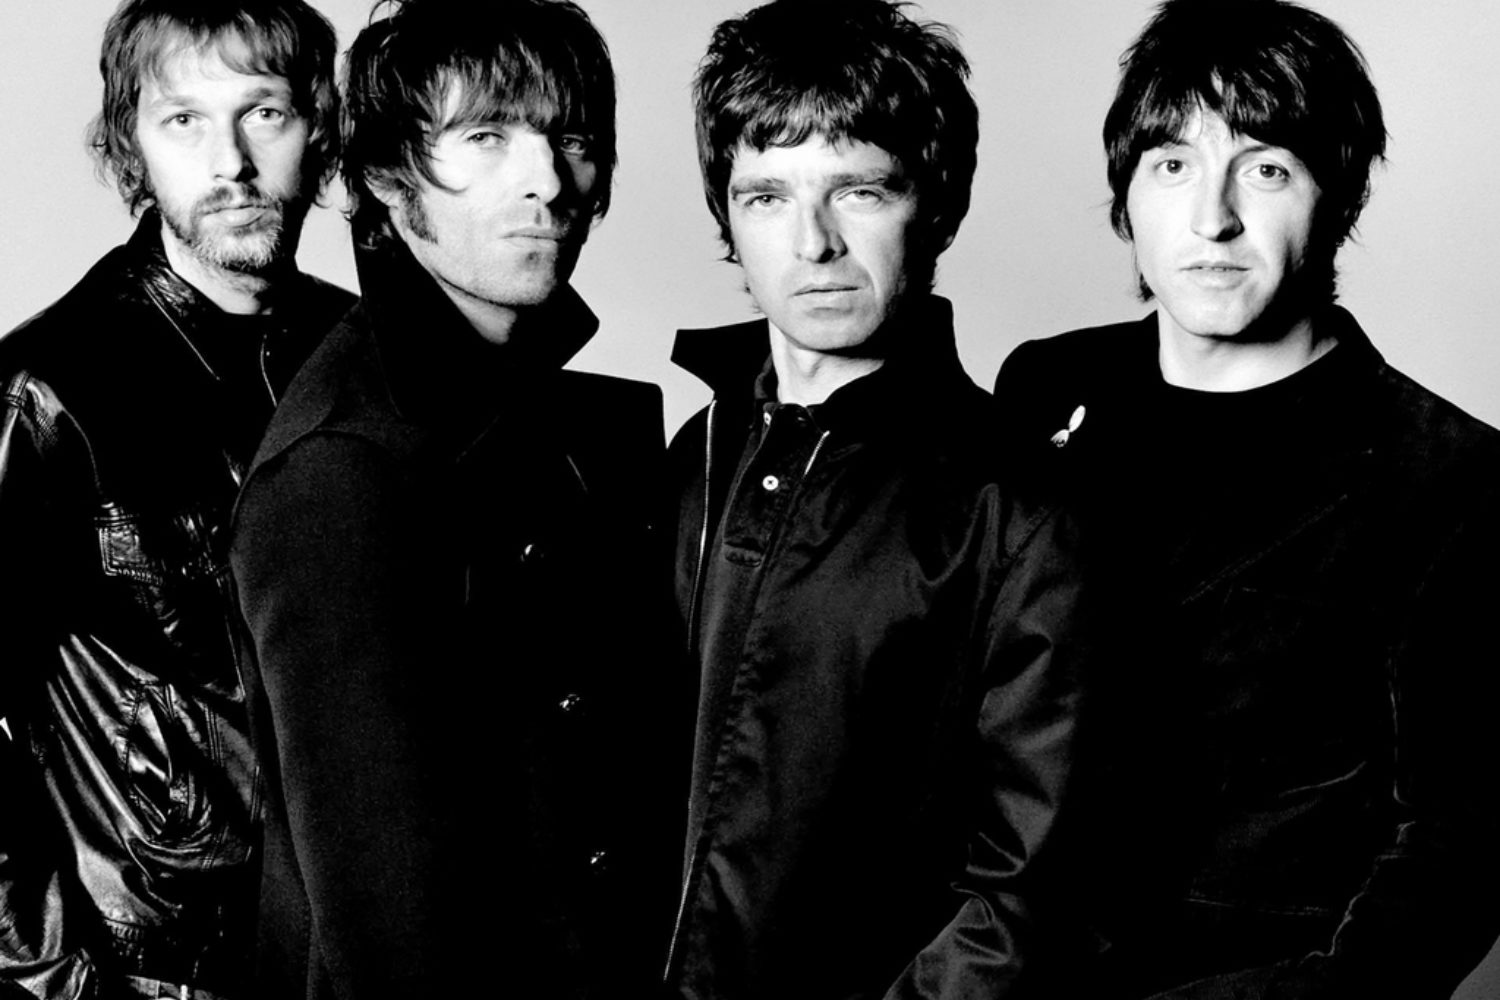 Oasis is the reason I had over $38,000 in credit card debt when I turned 30.